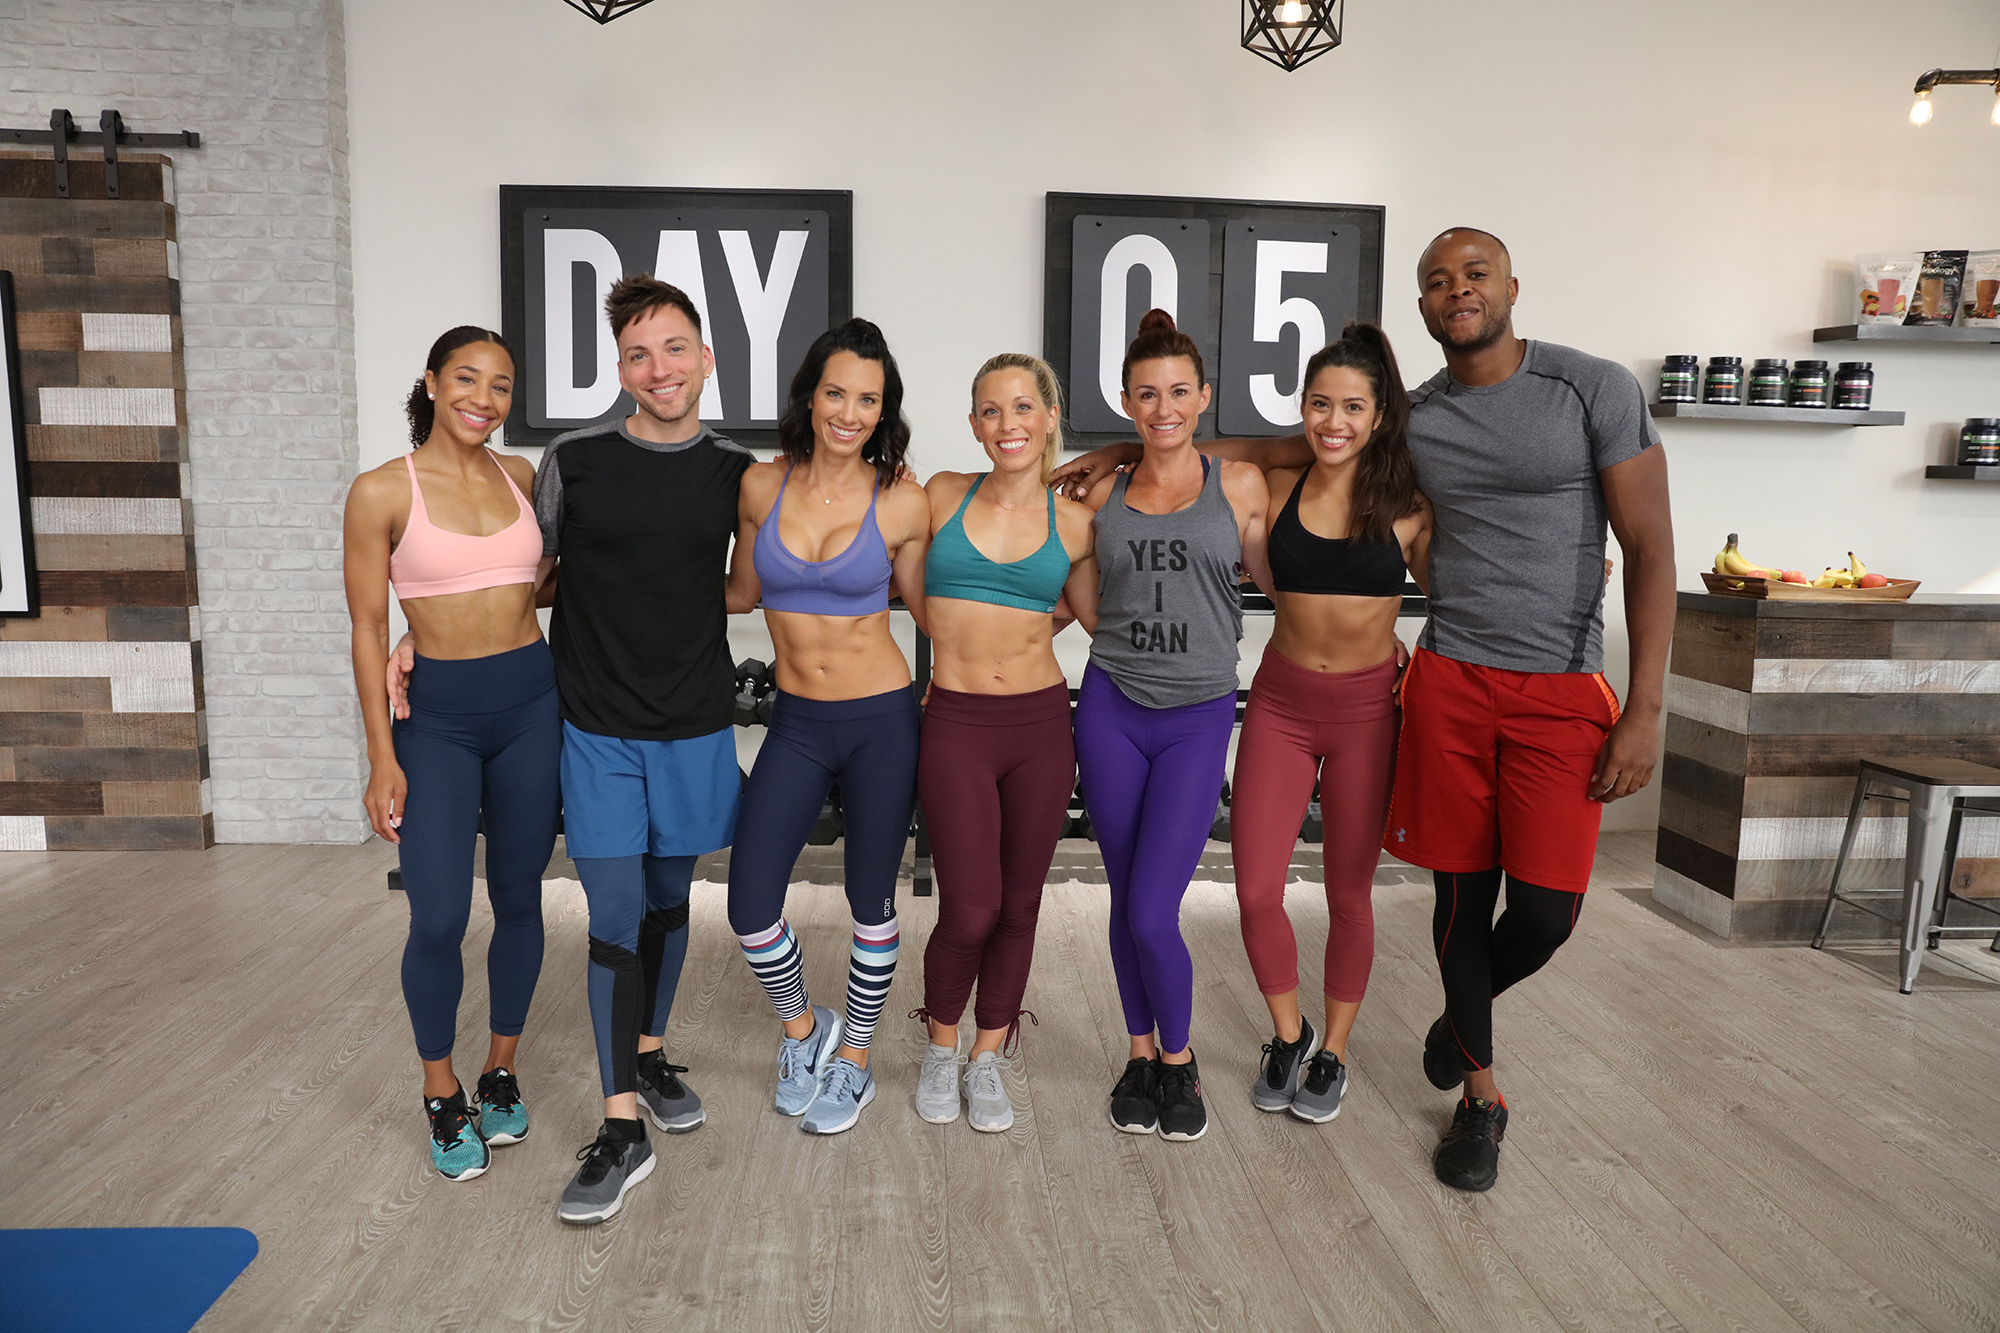 80 Day Obsession Group Photo with Autumn Calabrese and Calie Calabrese.